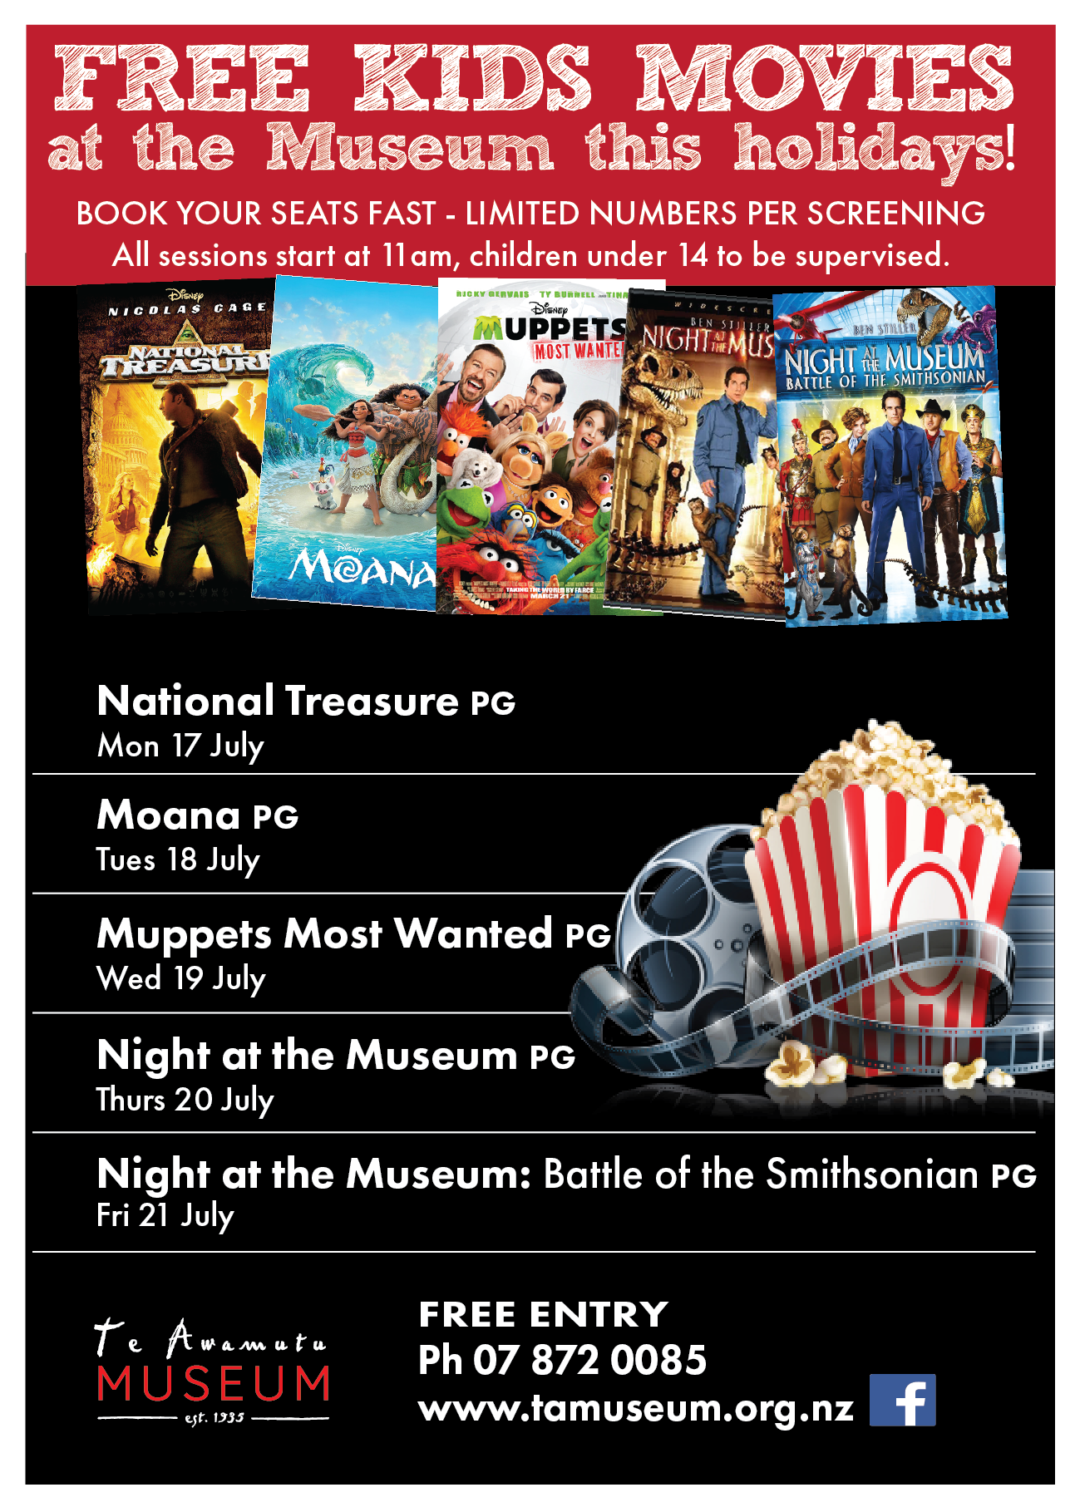 Movies at the Museum!